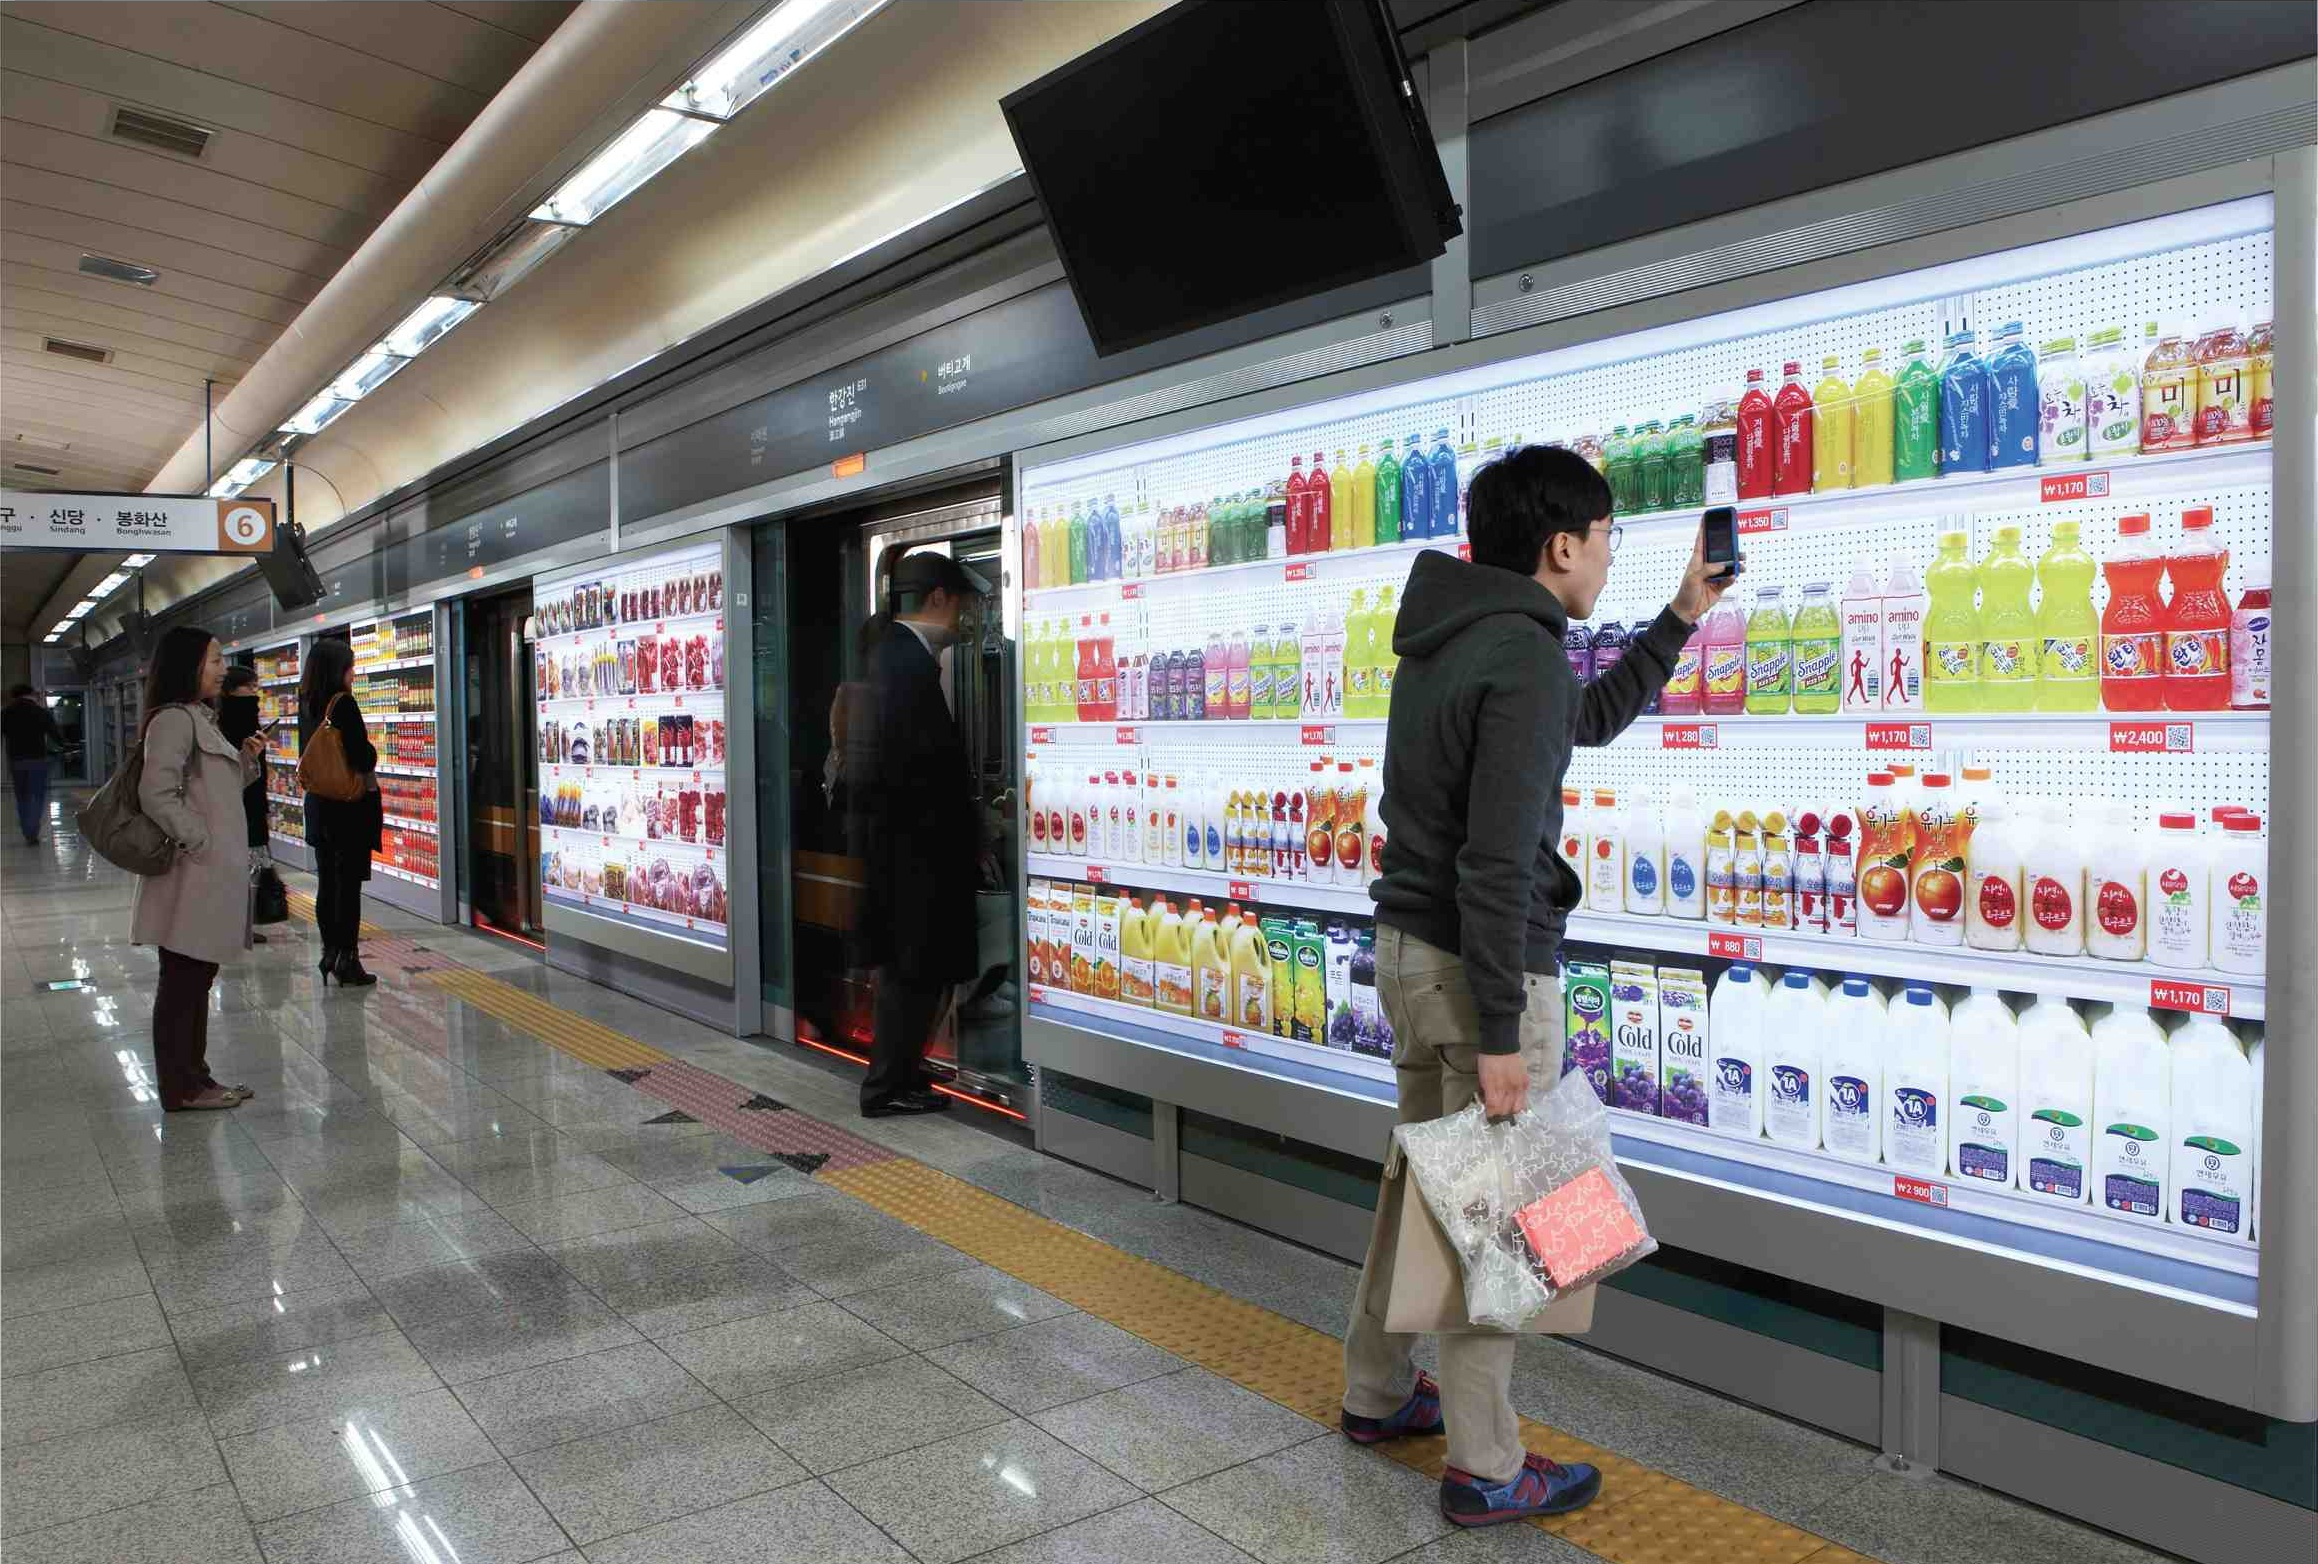 Tesco homeplus subway virtual store in south korea 1 Shopping for home